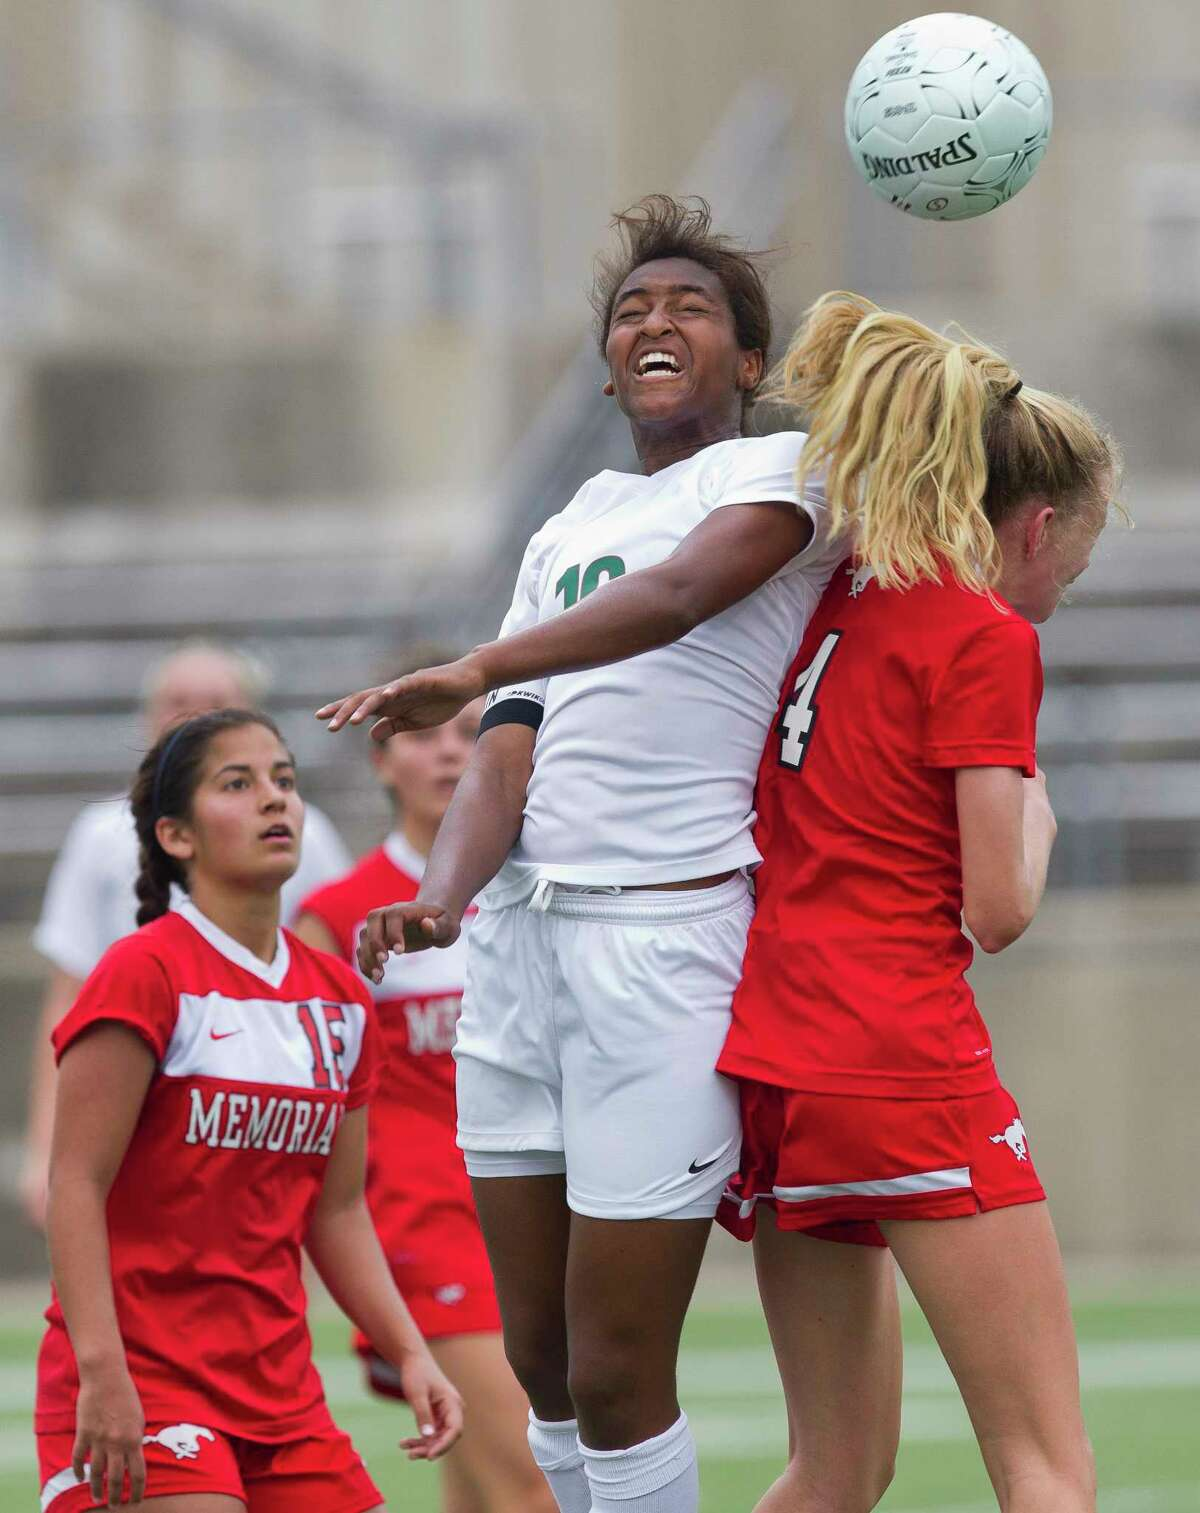 The Woodlands forward Jazzy Richards (16) goes for a header against Memorial midfielder Blakeley Buckingham (4) during the first period of a Region II-6A regional semifinal match at the Kelly Reeves Athletic Complex, Friday, April 13, 2018, in Round Rock.